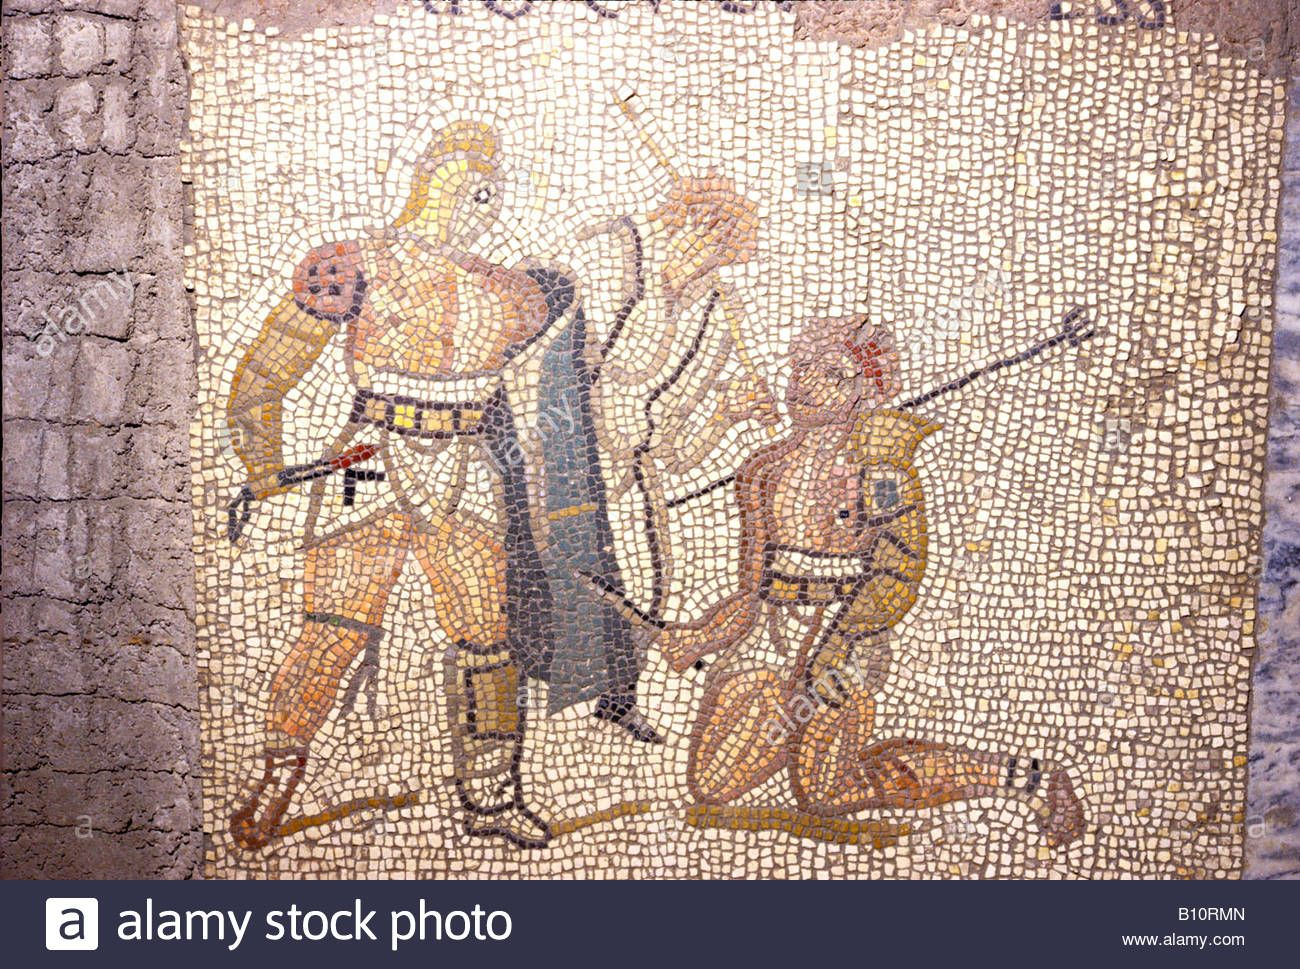 Download this stock image: Roman mosaic, Gladiators defeated Retarius kneels, Umpire behind. ©The Ancient Art & Architecture Collection Ltd. - B10RMN from Alamy's library of millions of high resolution stock photos, illustrations and vectors.